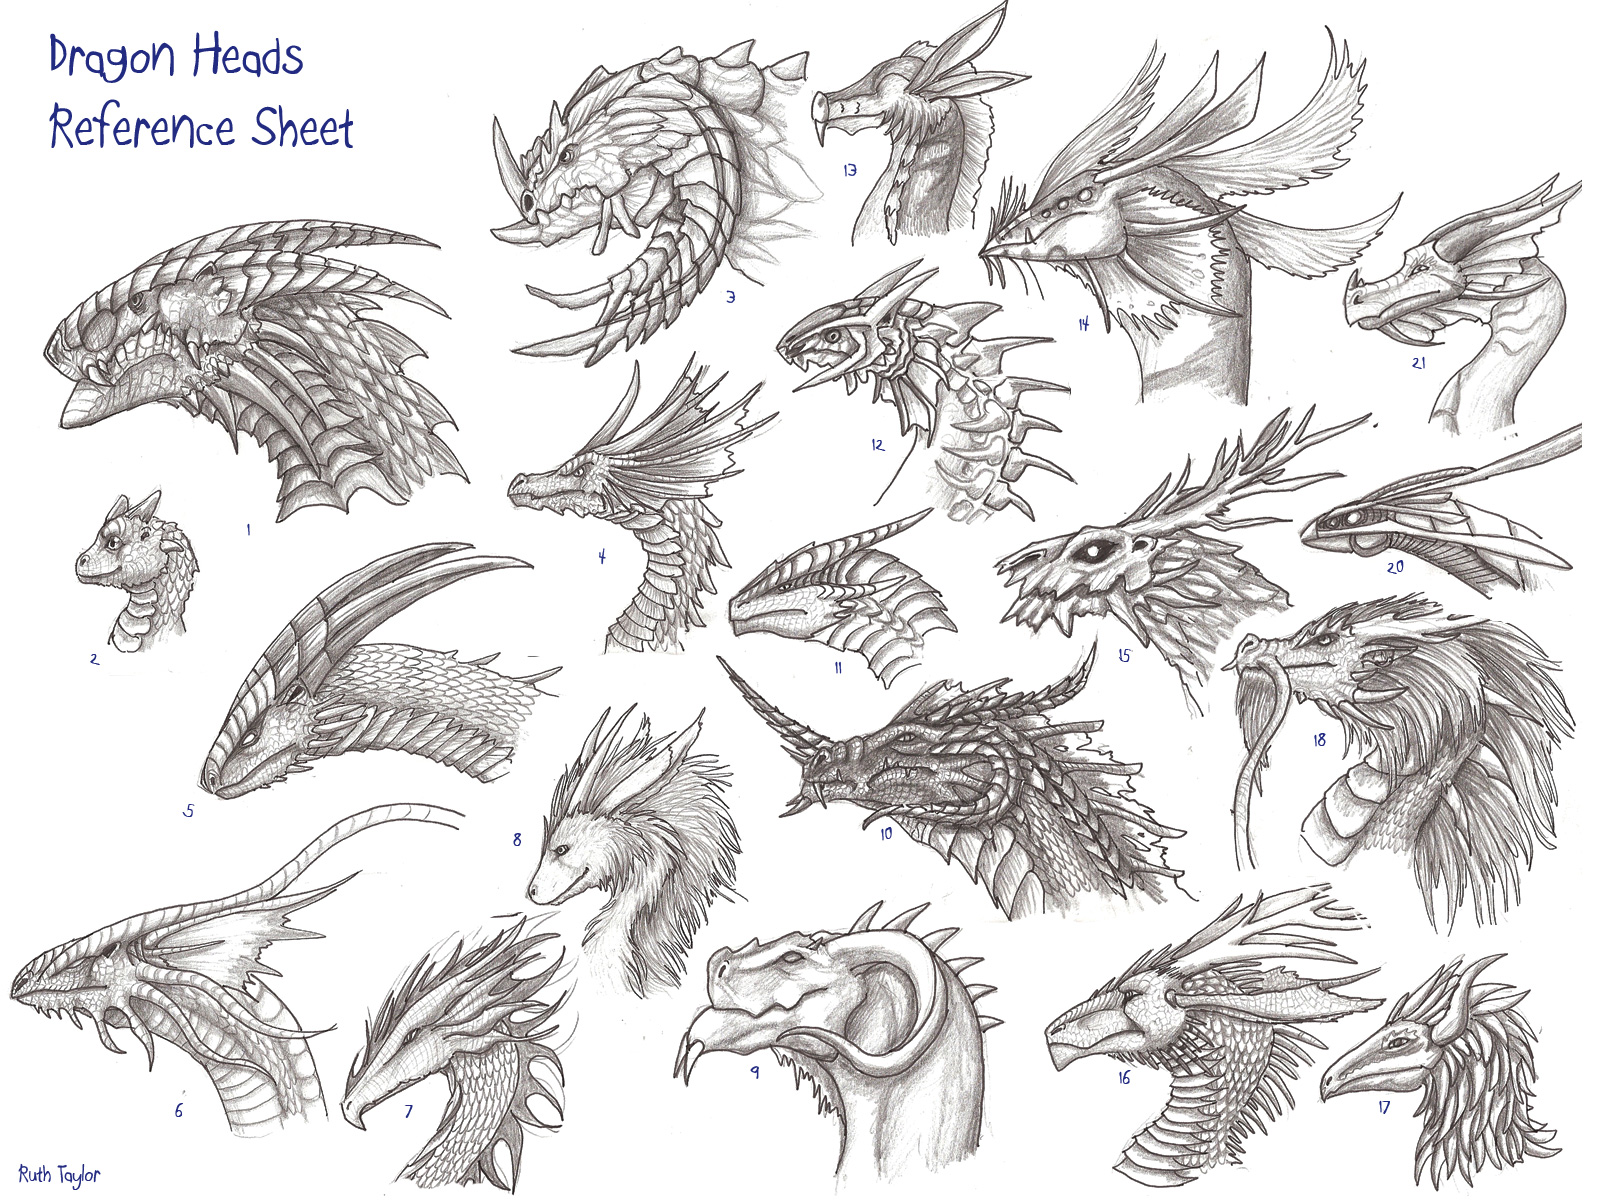 Dragon heads reference sheet